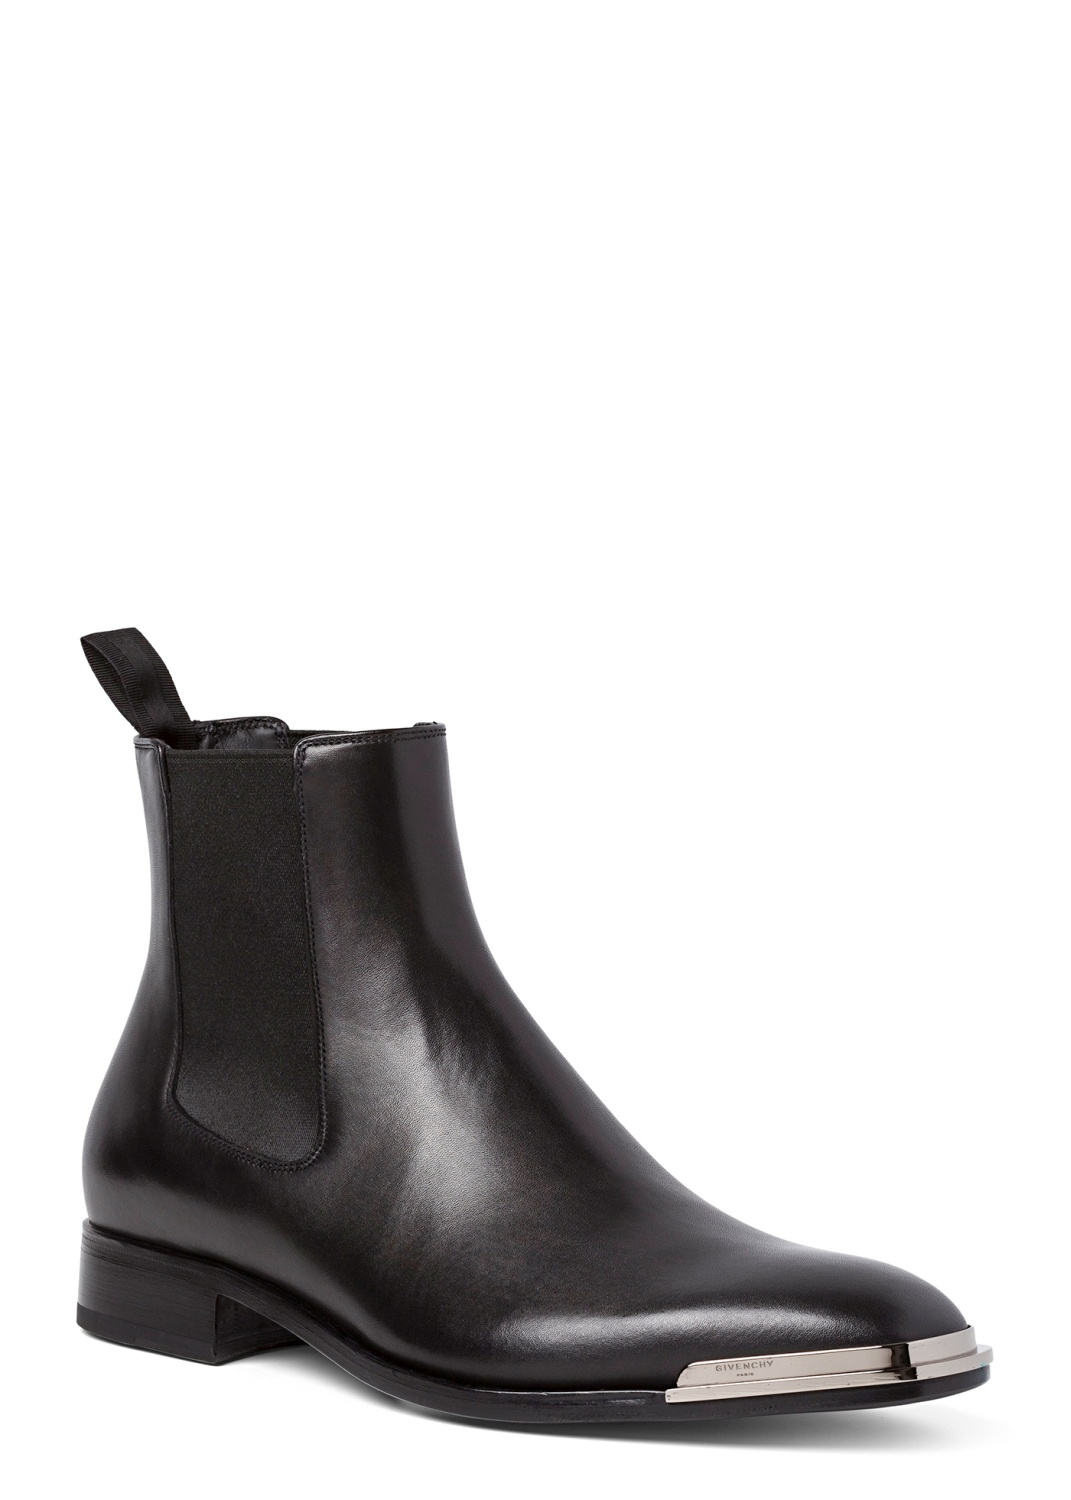 CLASSIC CHELSEA BOOT image number 1